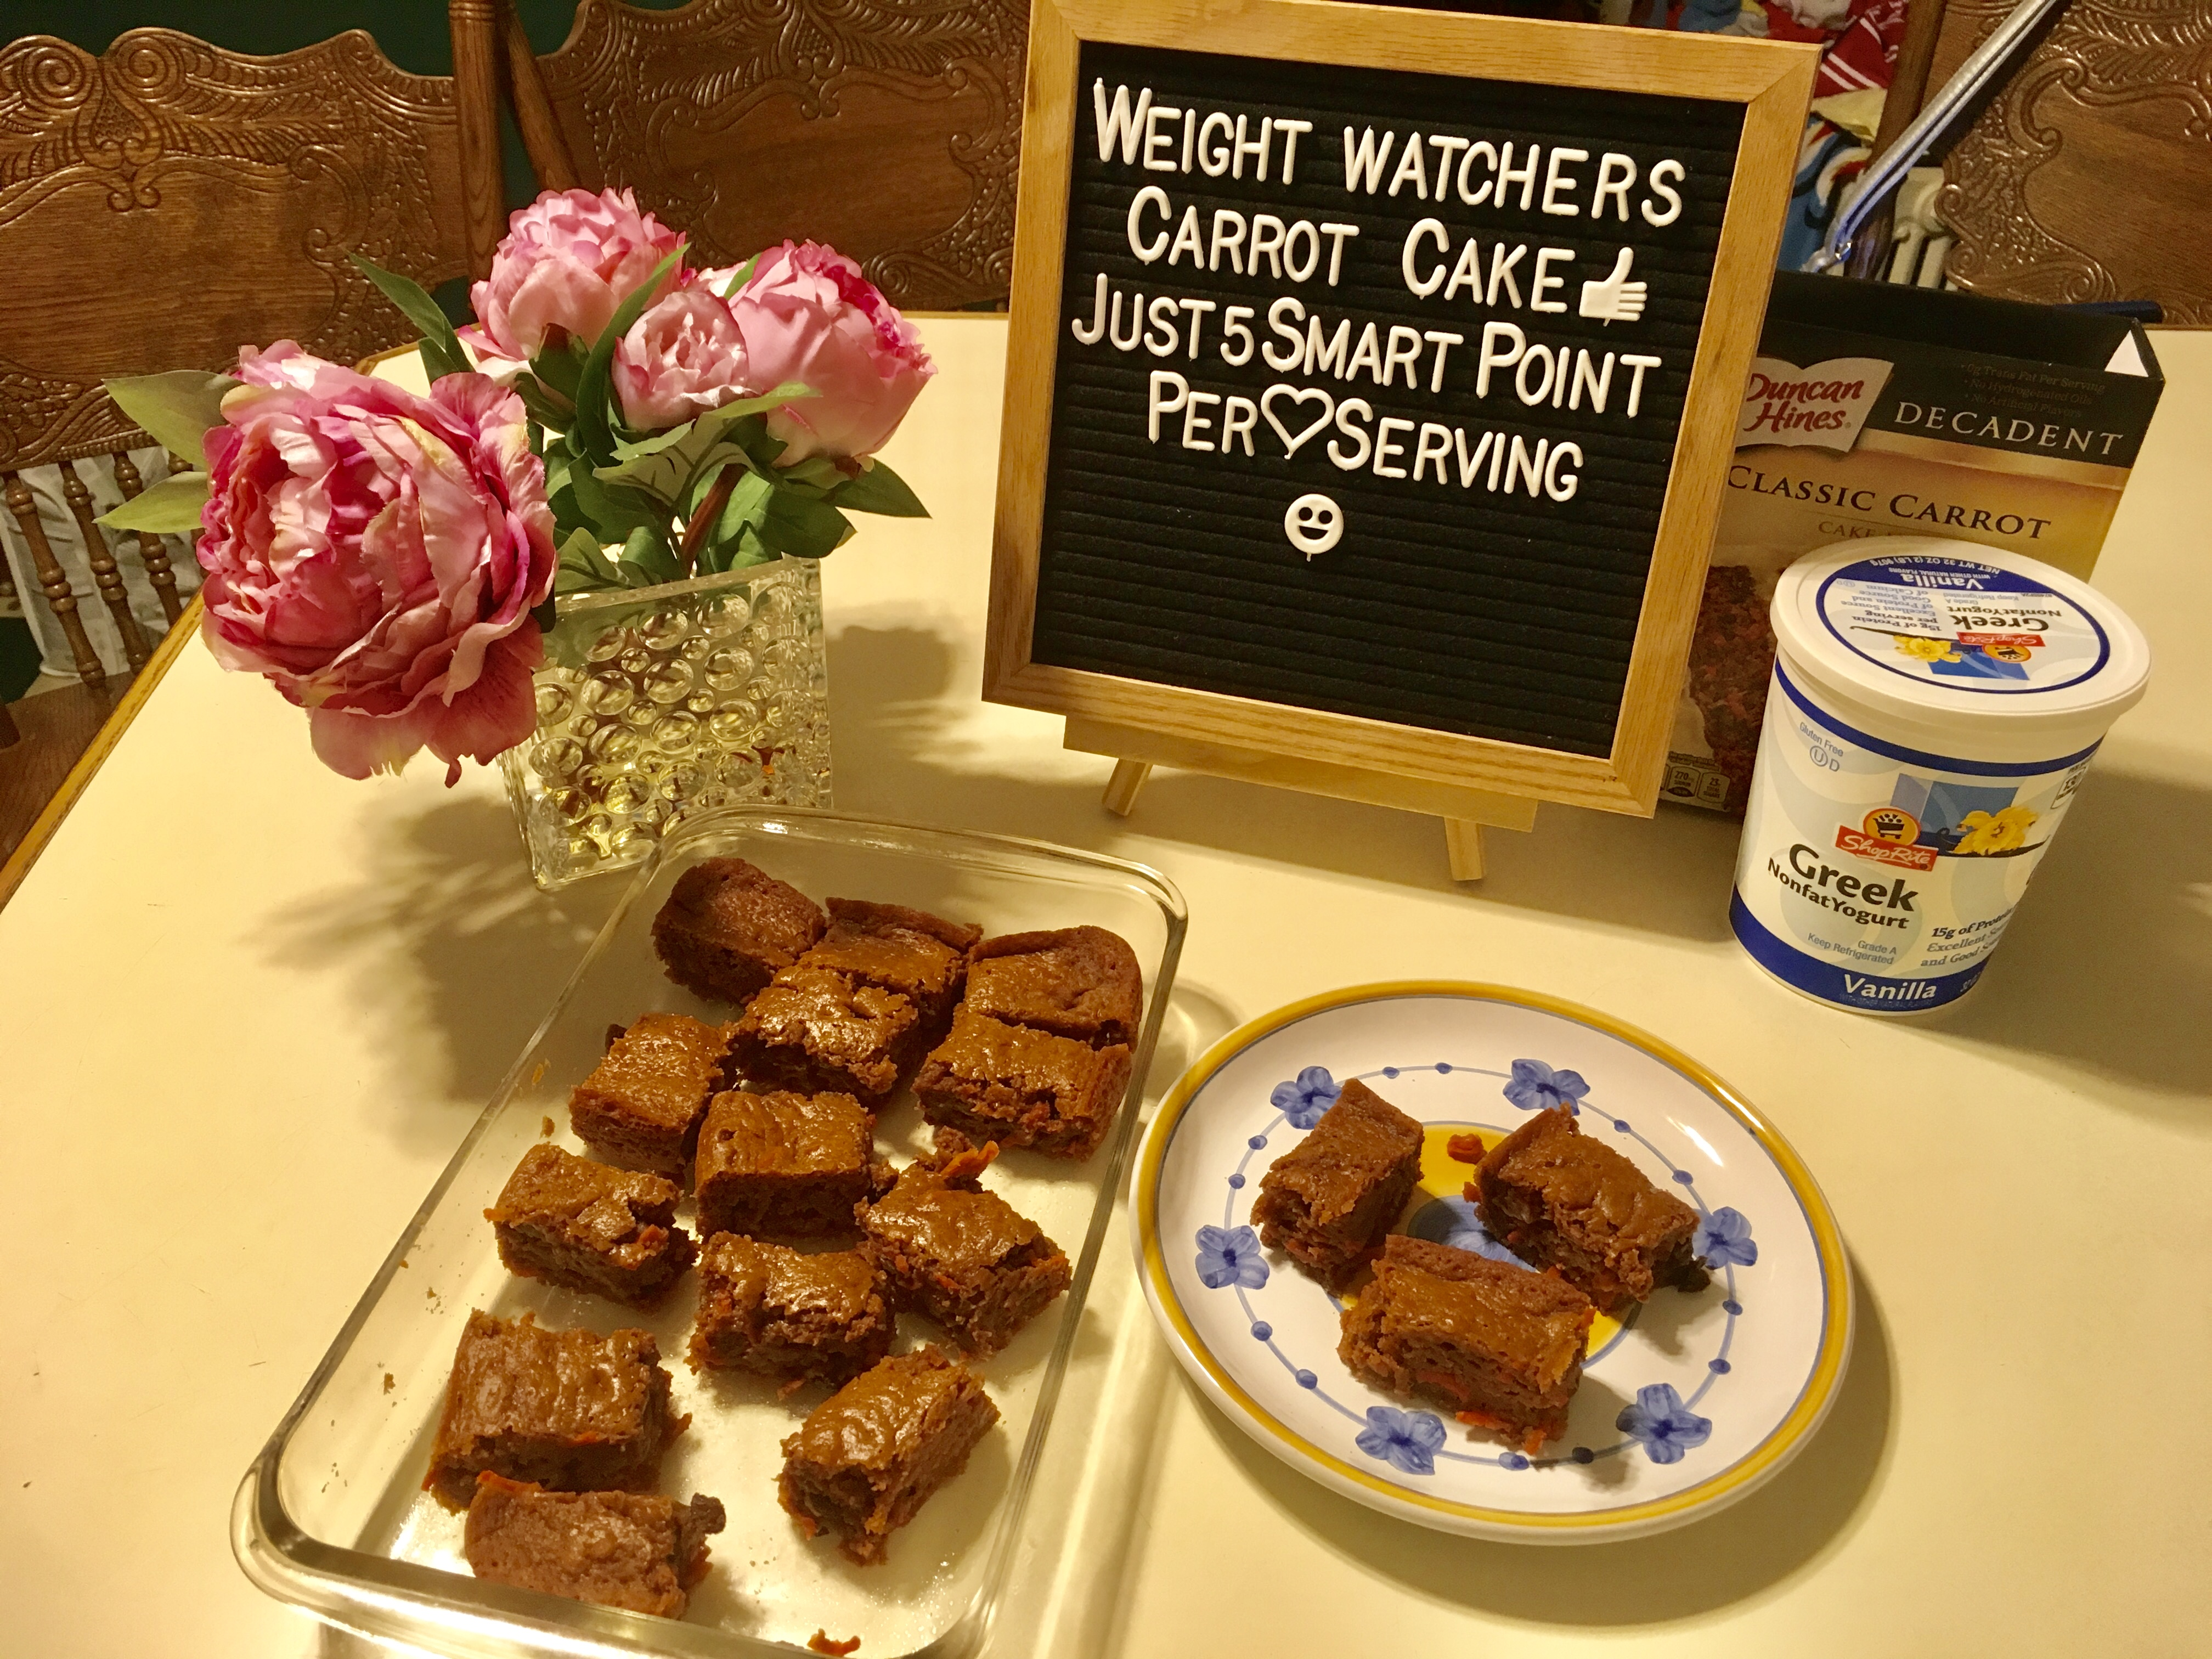 Kid approved Weight Watchers Carrot Cake Just 5 smart point per serving